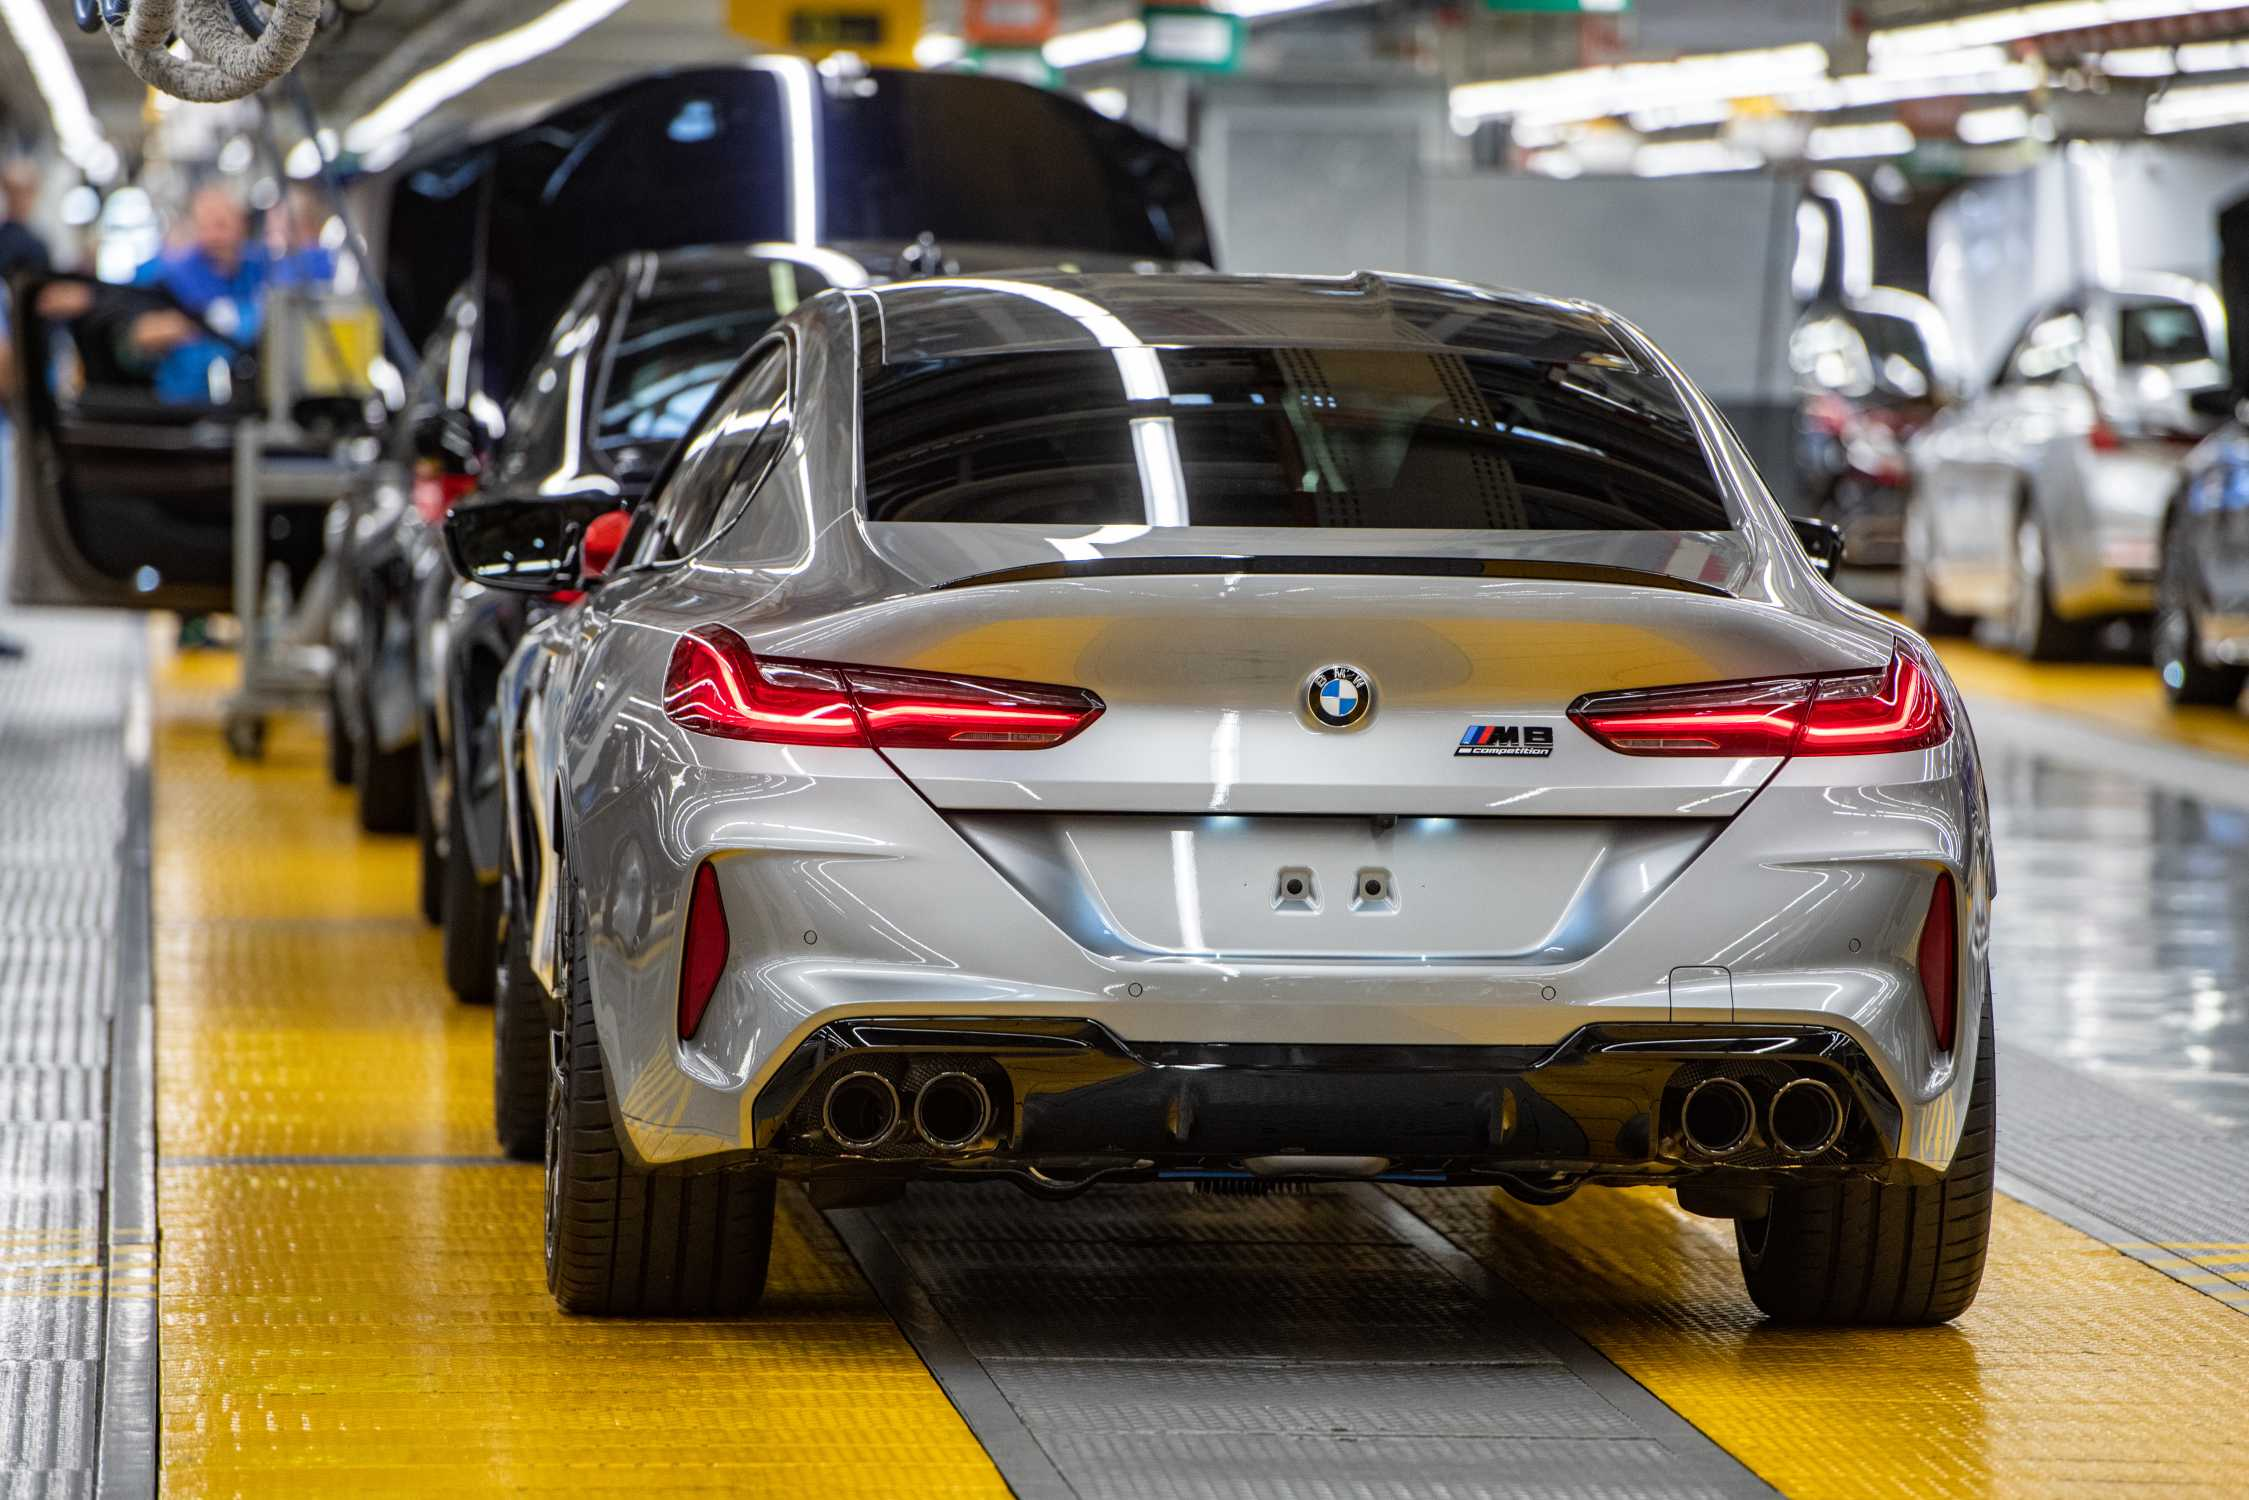 Start Of Production Of New Bmw M8 Gran Coupe At Bmw Group